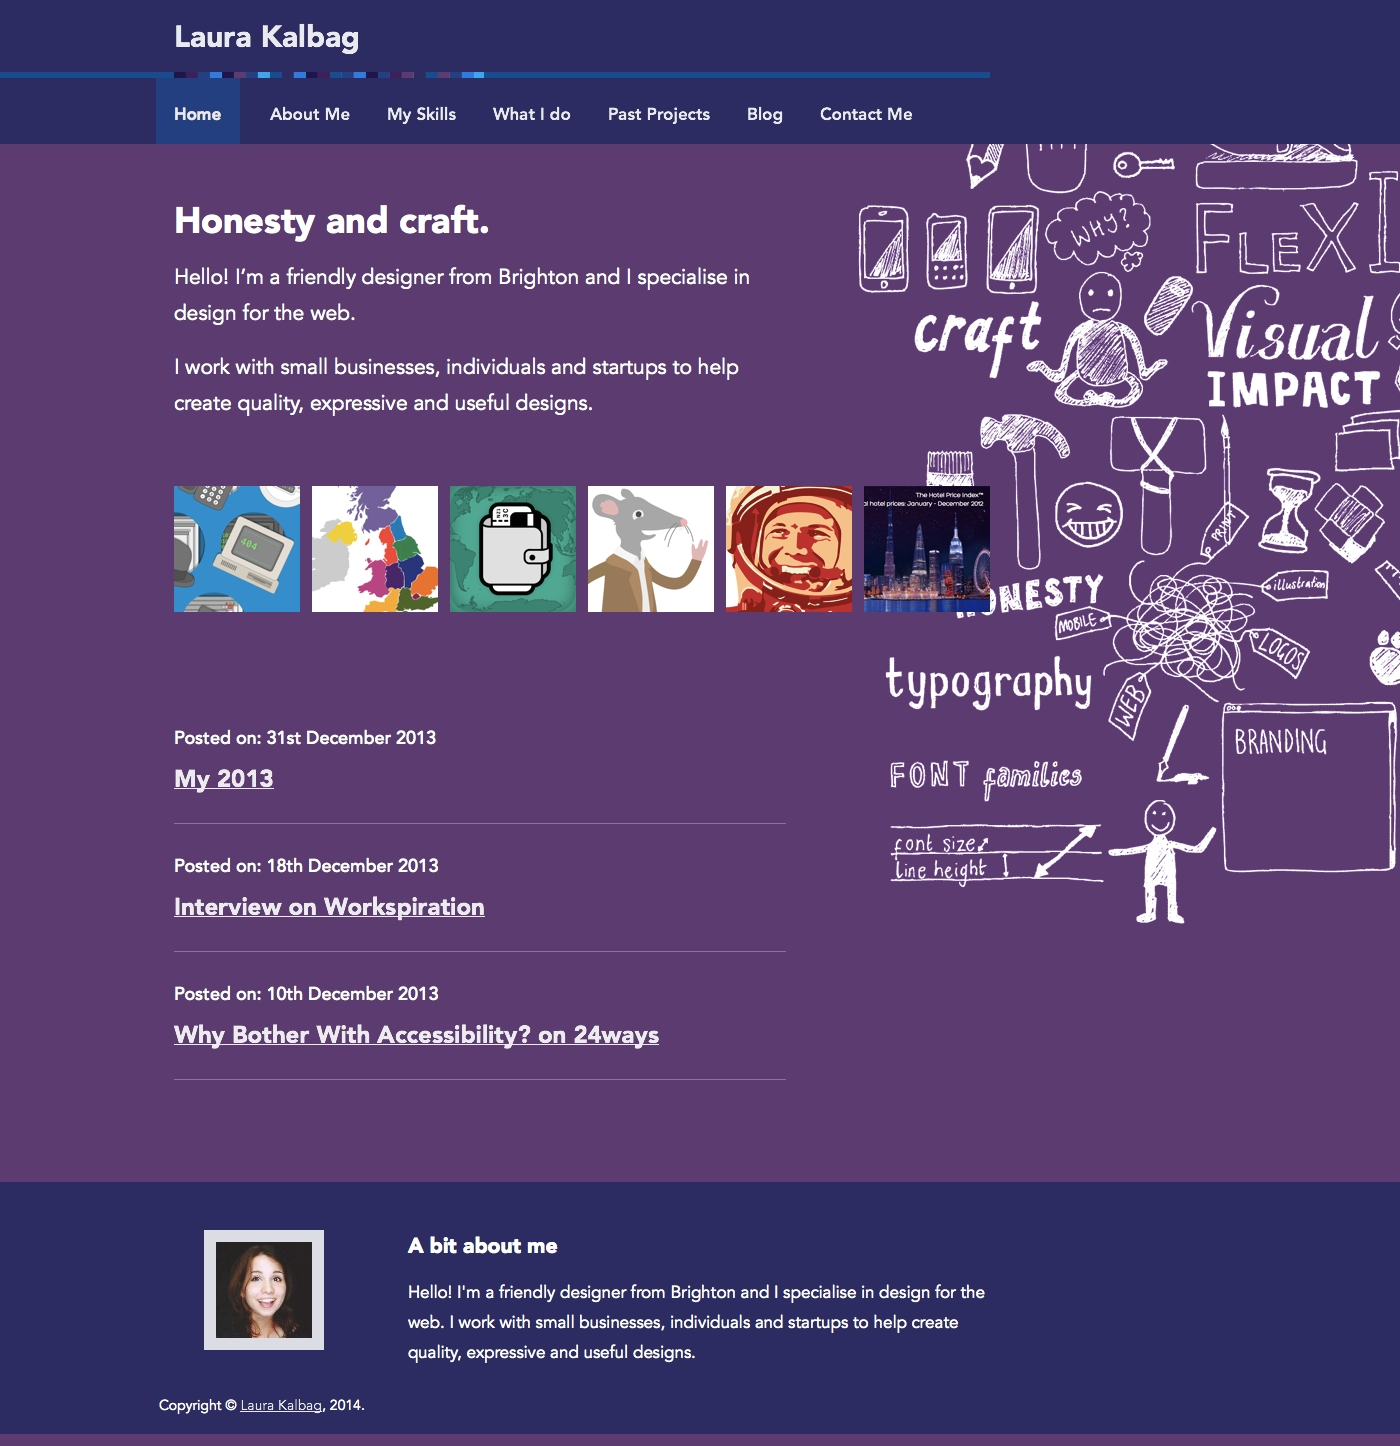 Previous homepage layout, with portfolio images, blog posts and a messy illustration